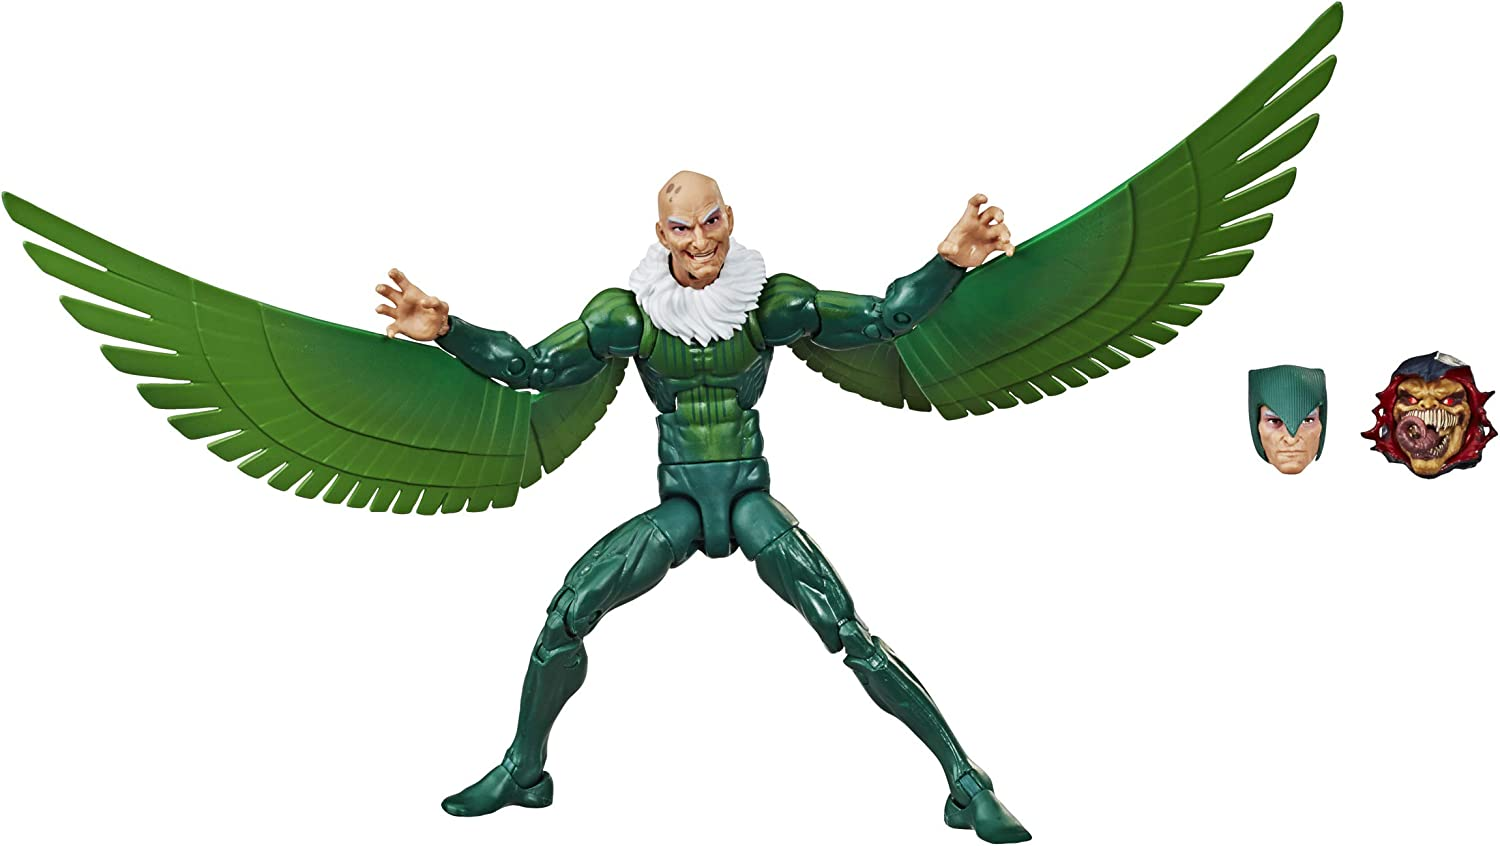 """Spider-Man Hasbro Marvel Legends Series 6"""" Collectible Action Figure Marvel's Vulture Toy, with Build-A-Figurepiece & Accessory"""